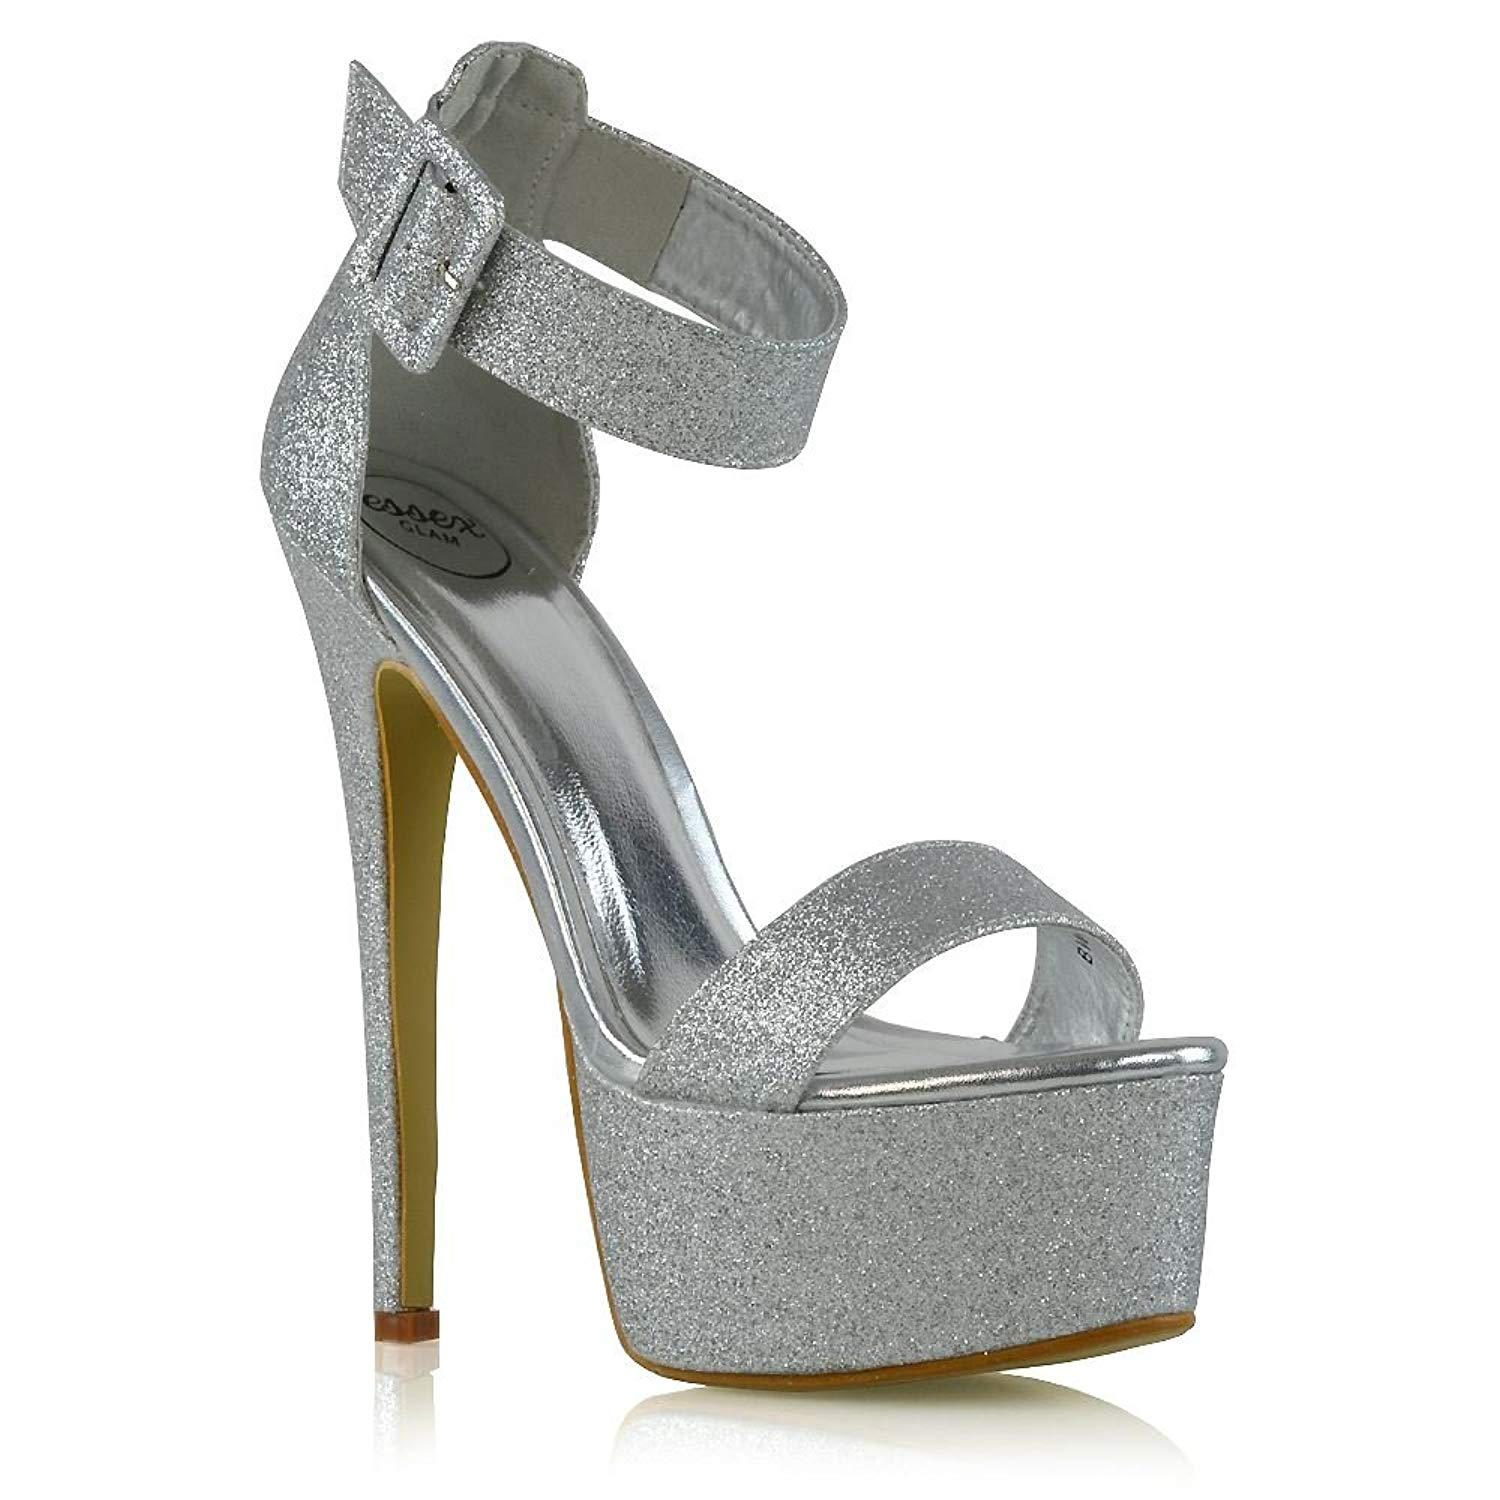 ef08aaac9a5 Get Quotations · ESSEX GLAM Womens Ankle Strap Open Toe Stiletto Heel  Platform Shoes